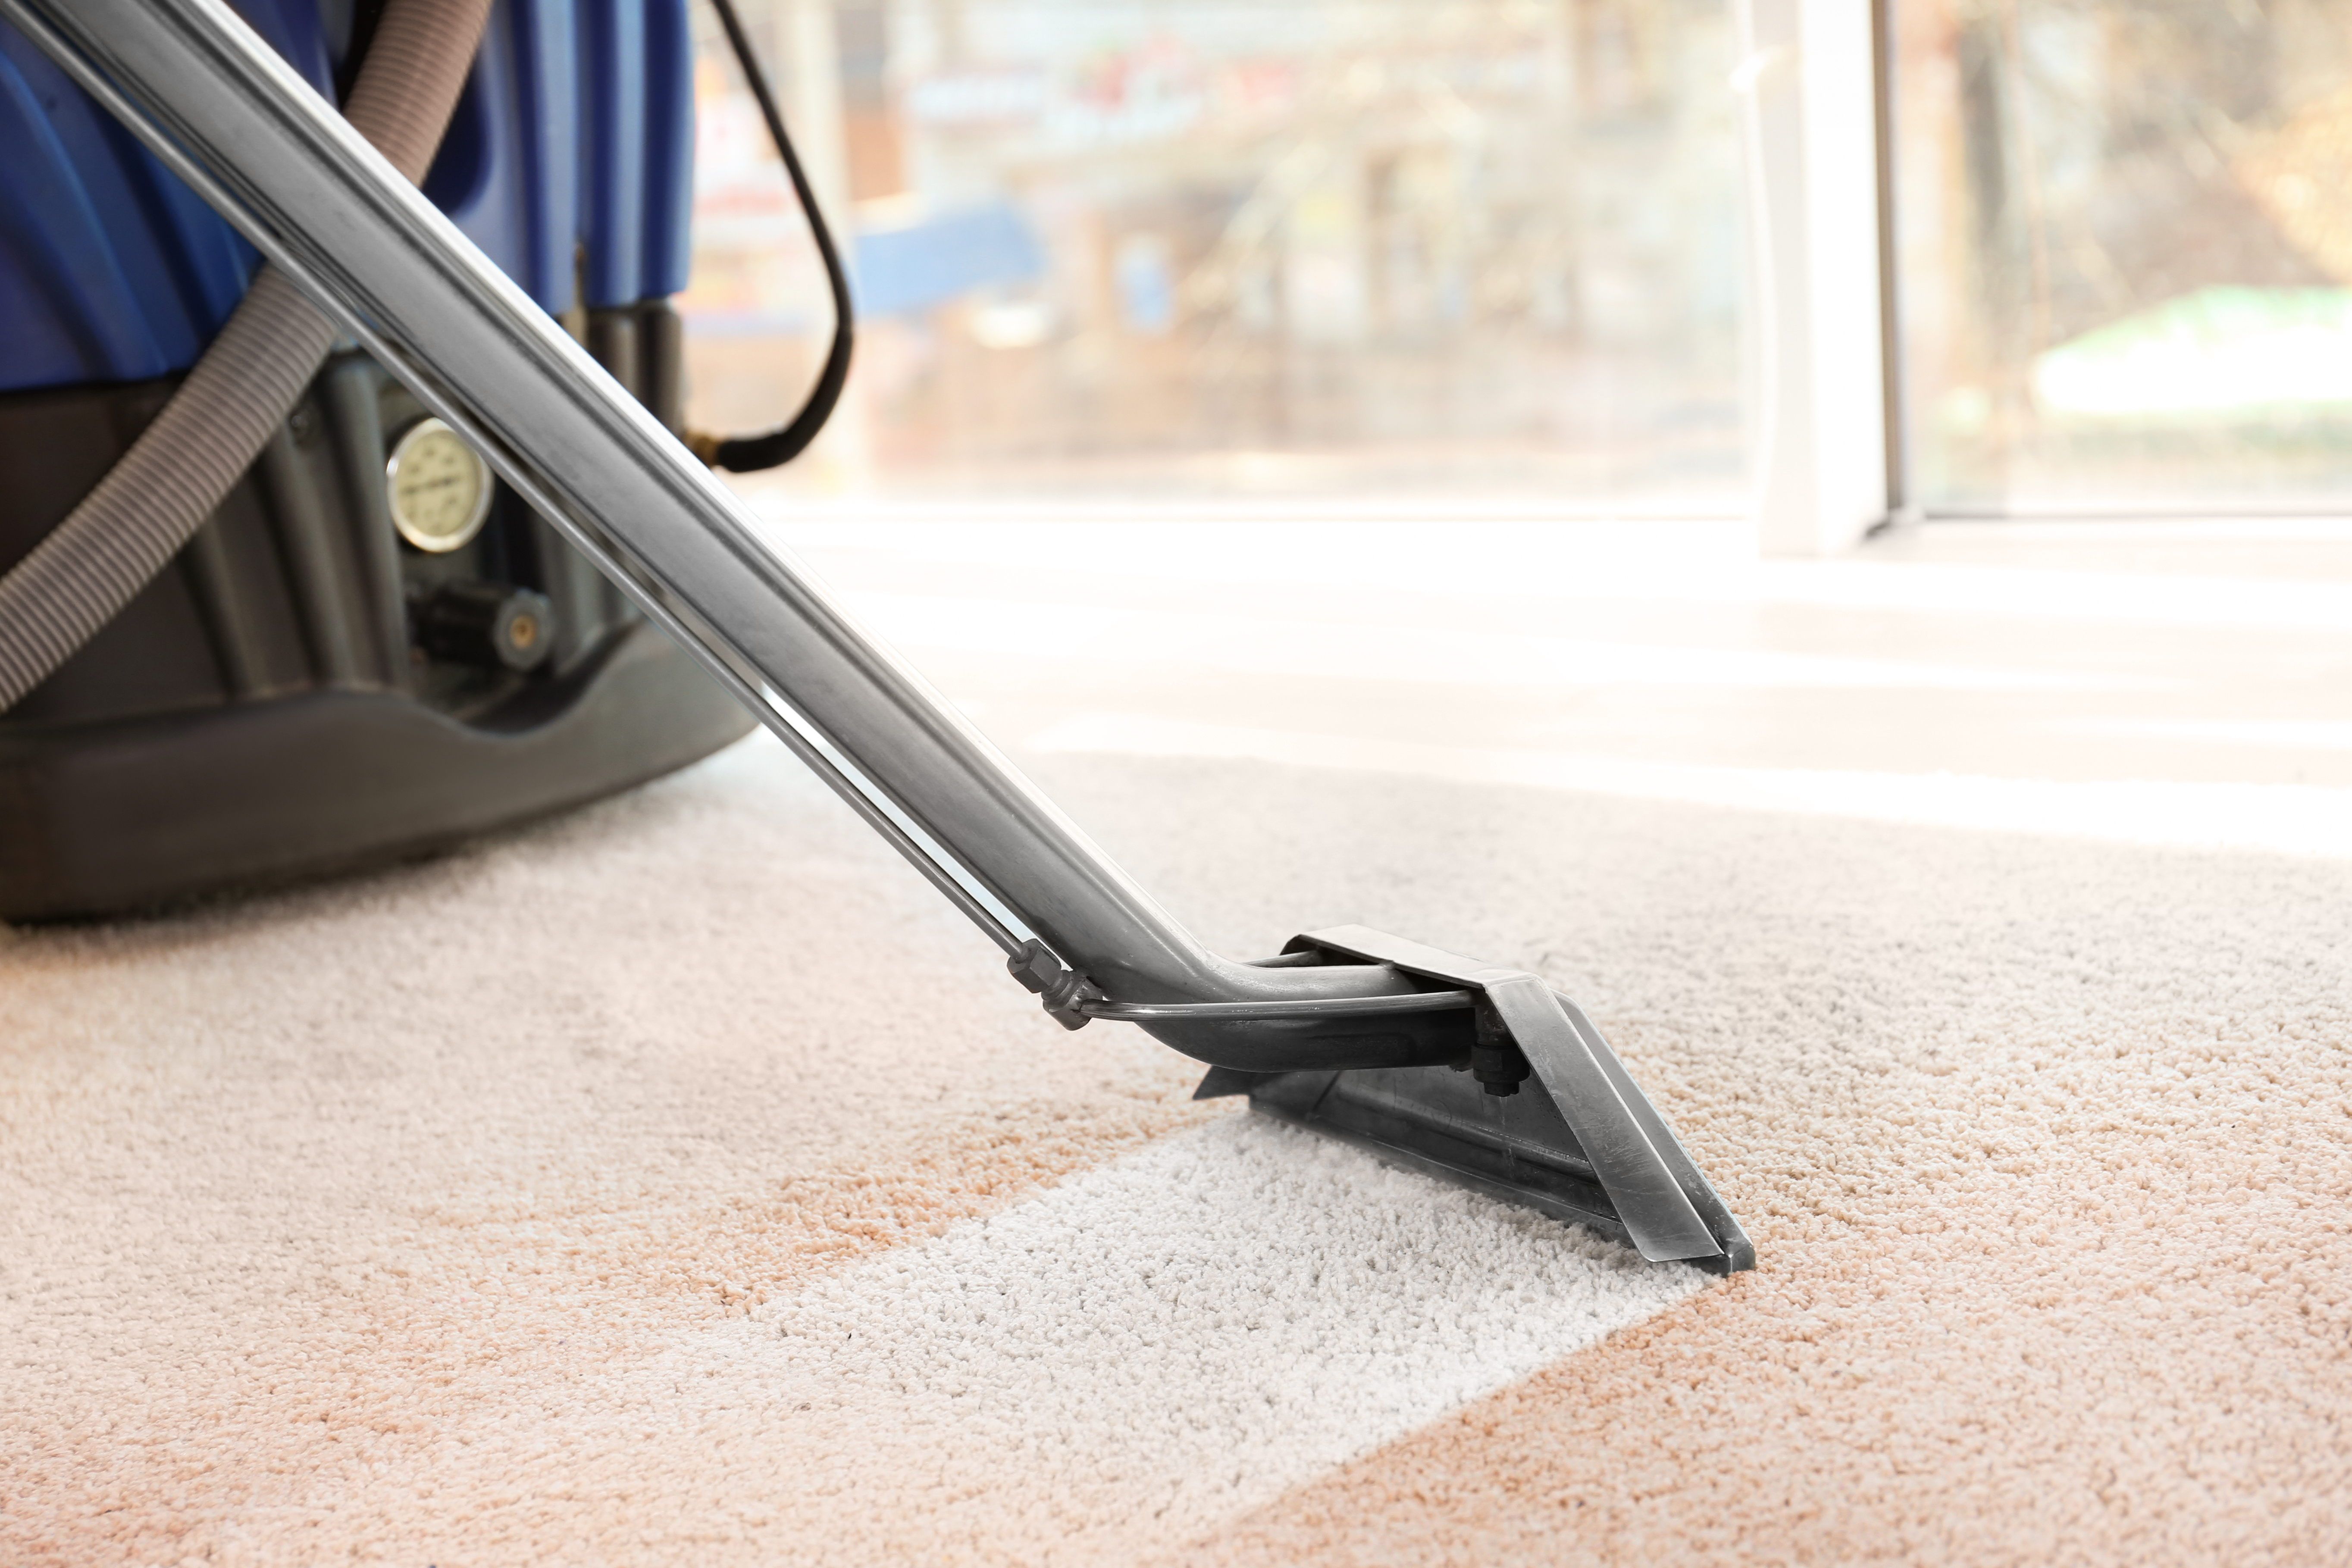 carpet cleaning, business